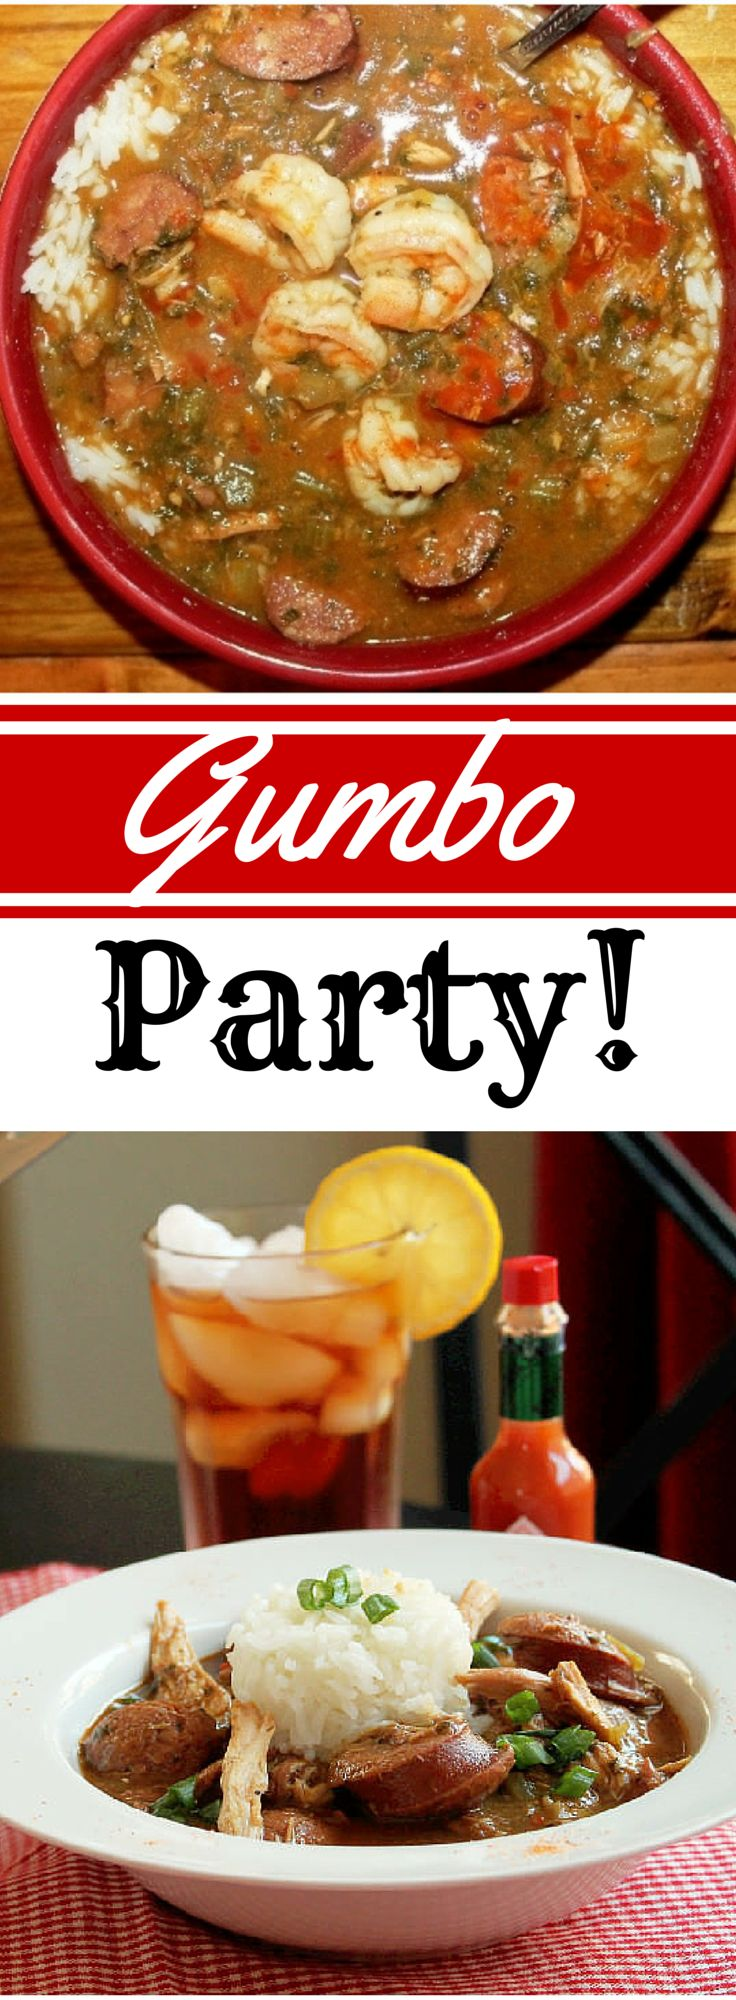 It's that time of year again! Yes, the weather is warming up and I am preparing to throw my annual Gumbo Party!